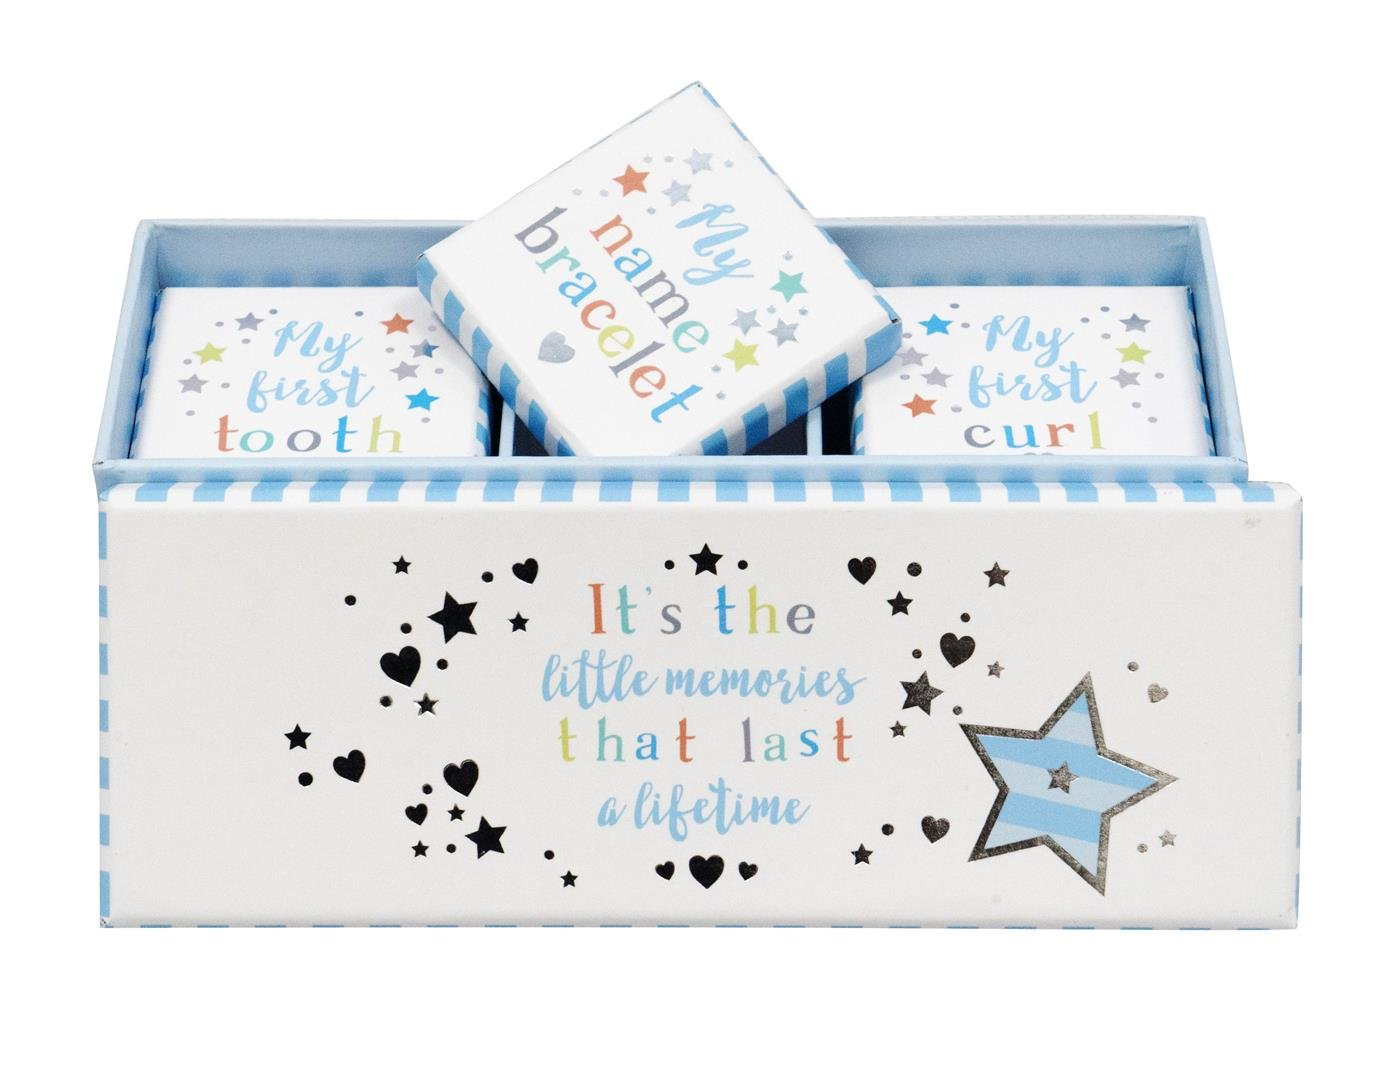 New Baby Boy Tooth Curl & Bracelet Box Set Pretty Gift Idea Two Up Two Down